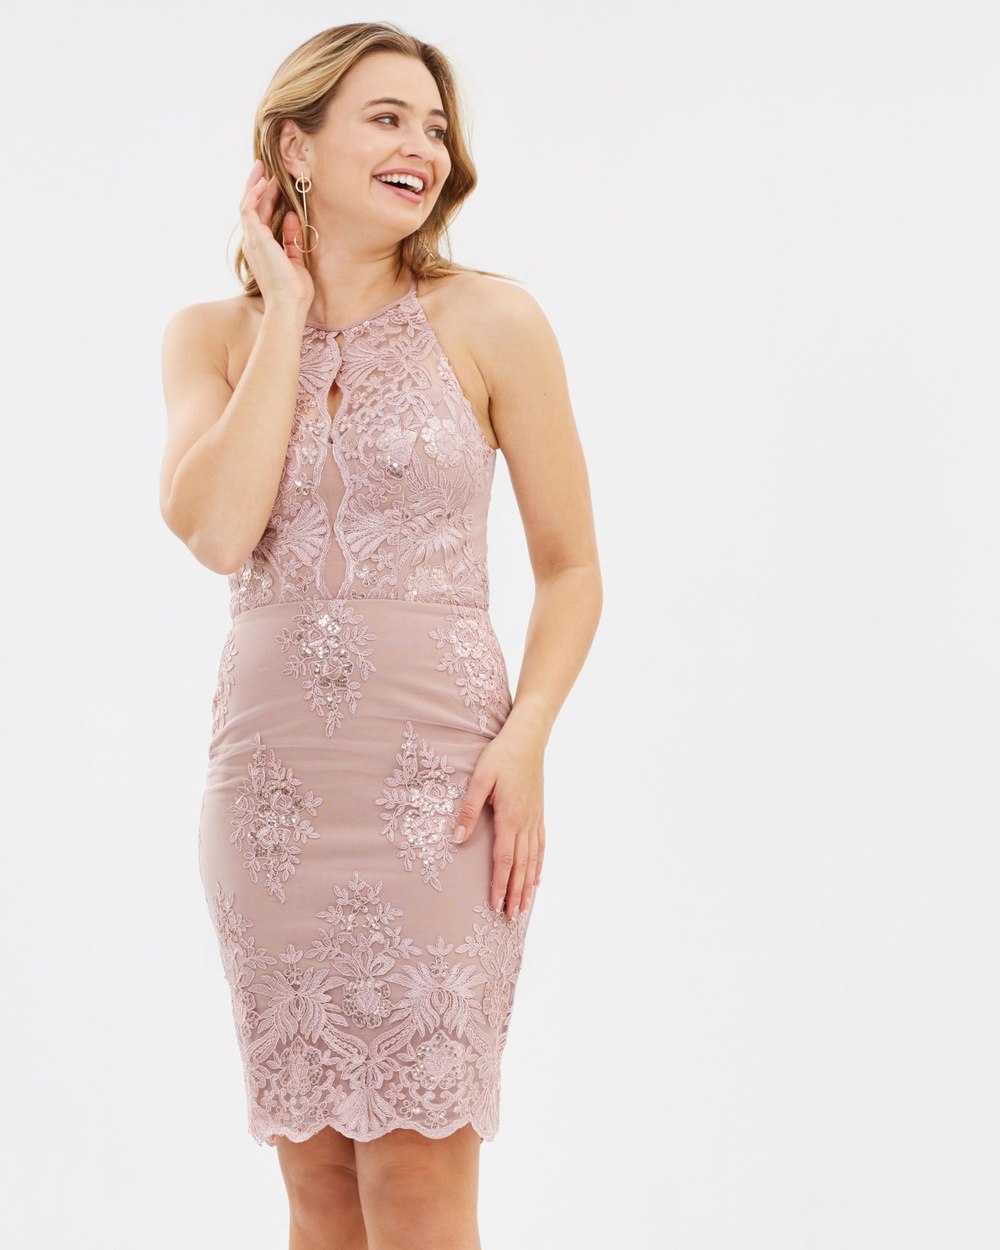 Photo of Lipsy Nude Sequin Lace Dress - buy Lipsy dresses on sale online